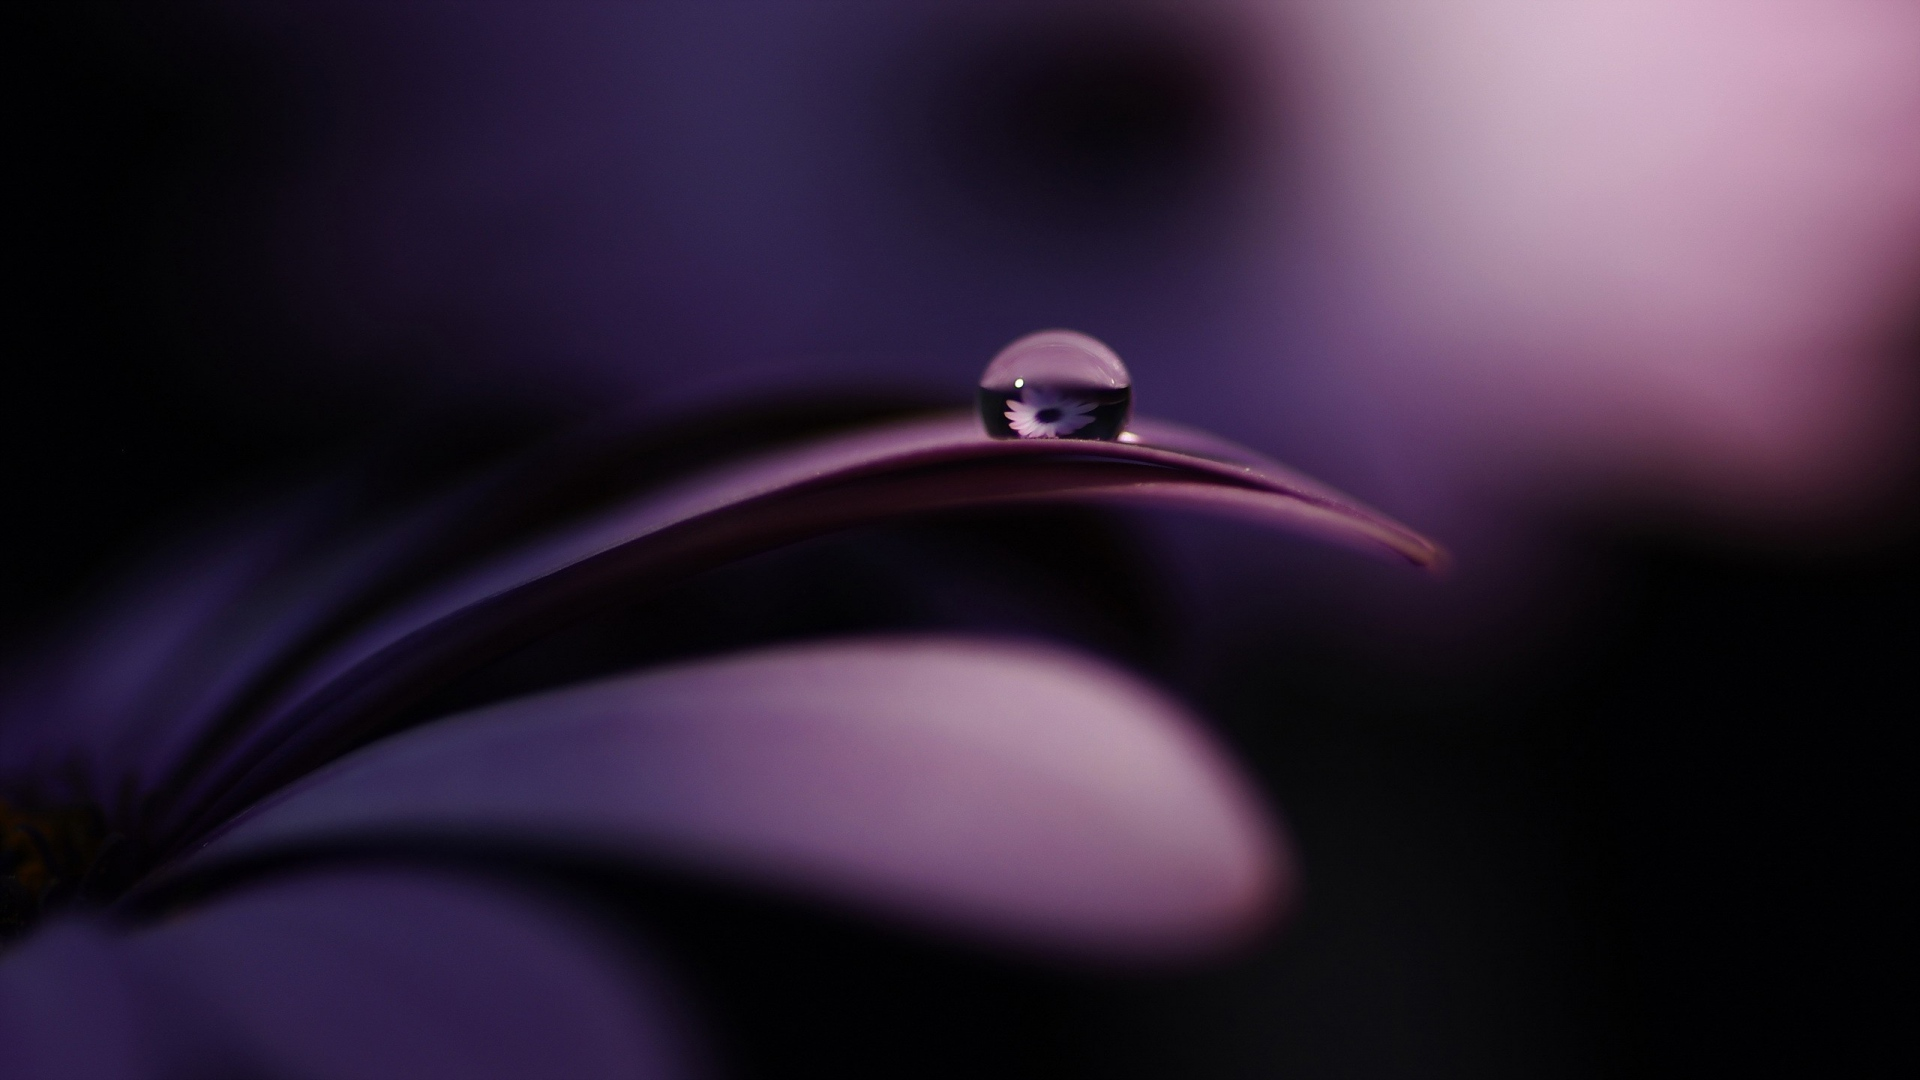 Dark Water Drop Wallpaper